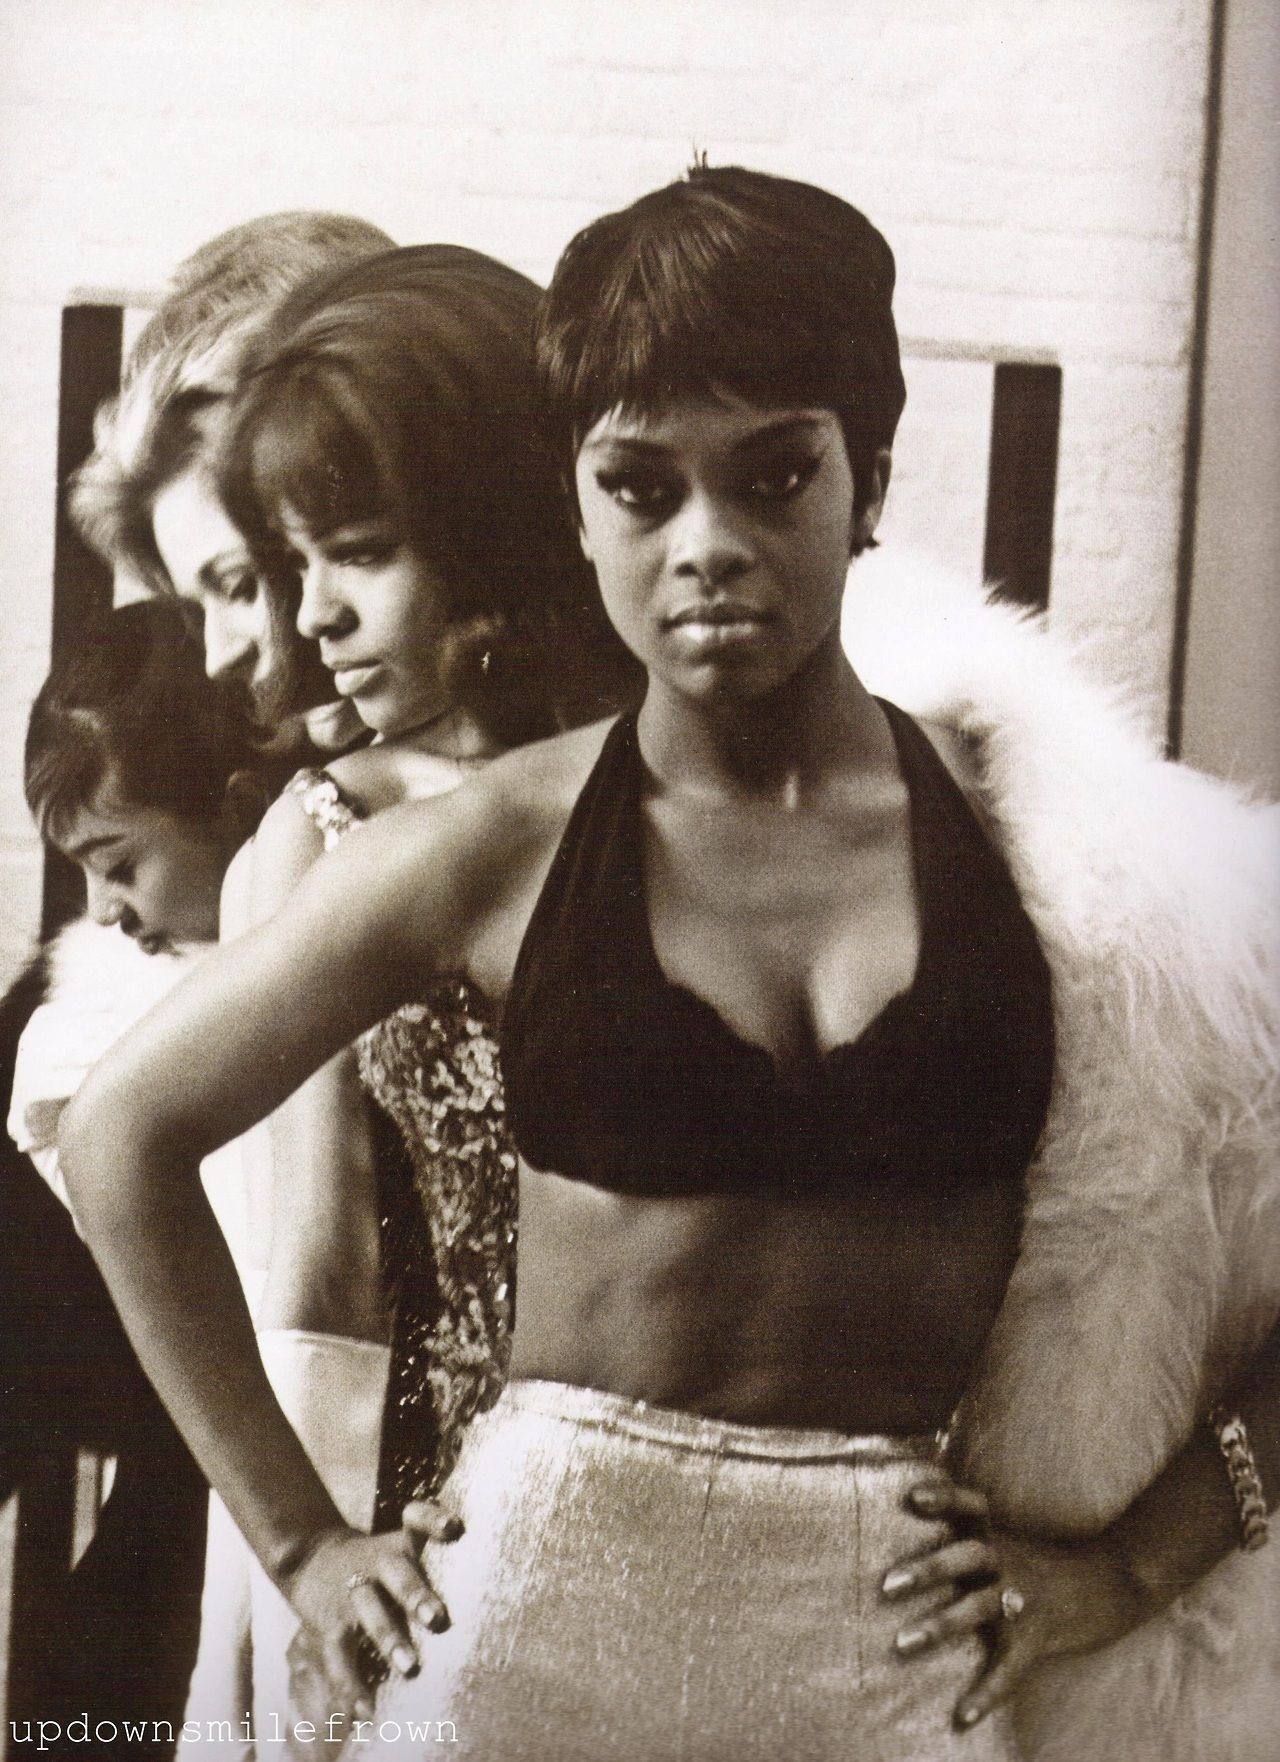 Images Of Lola Falana Classy dancer, lola falana (sammy's girlfriend), and girls from golden